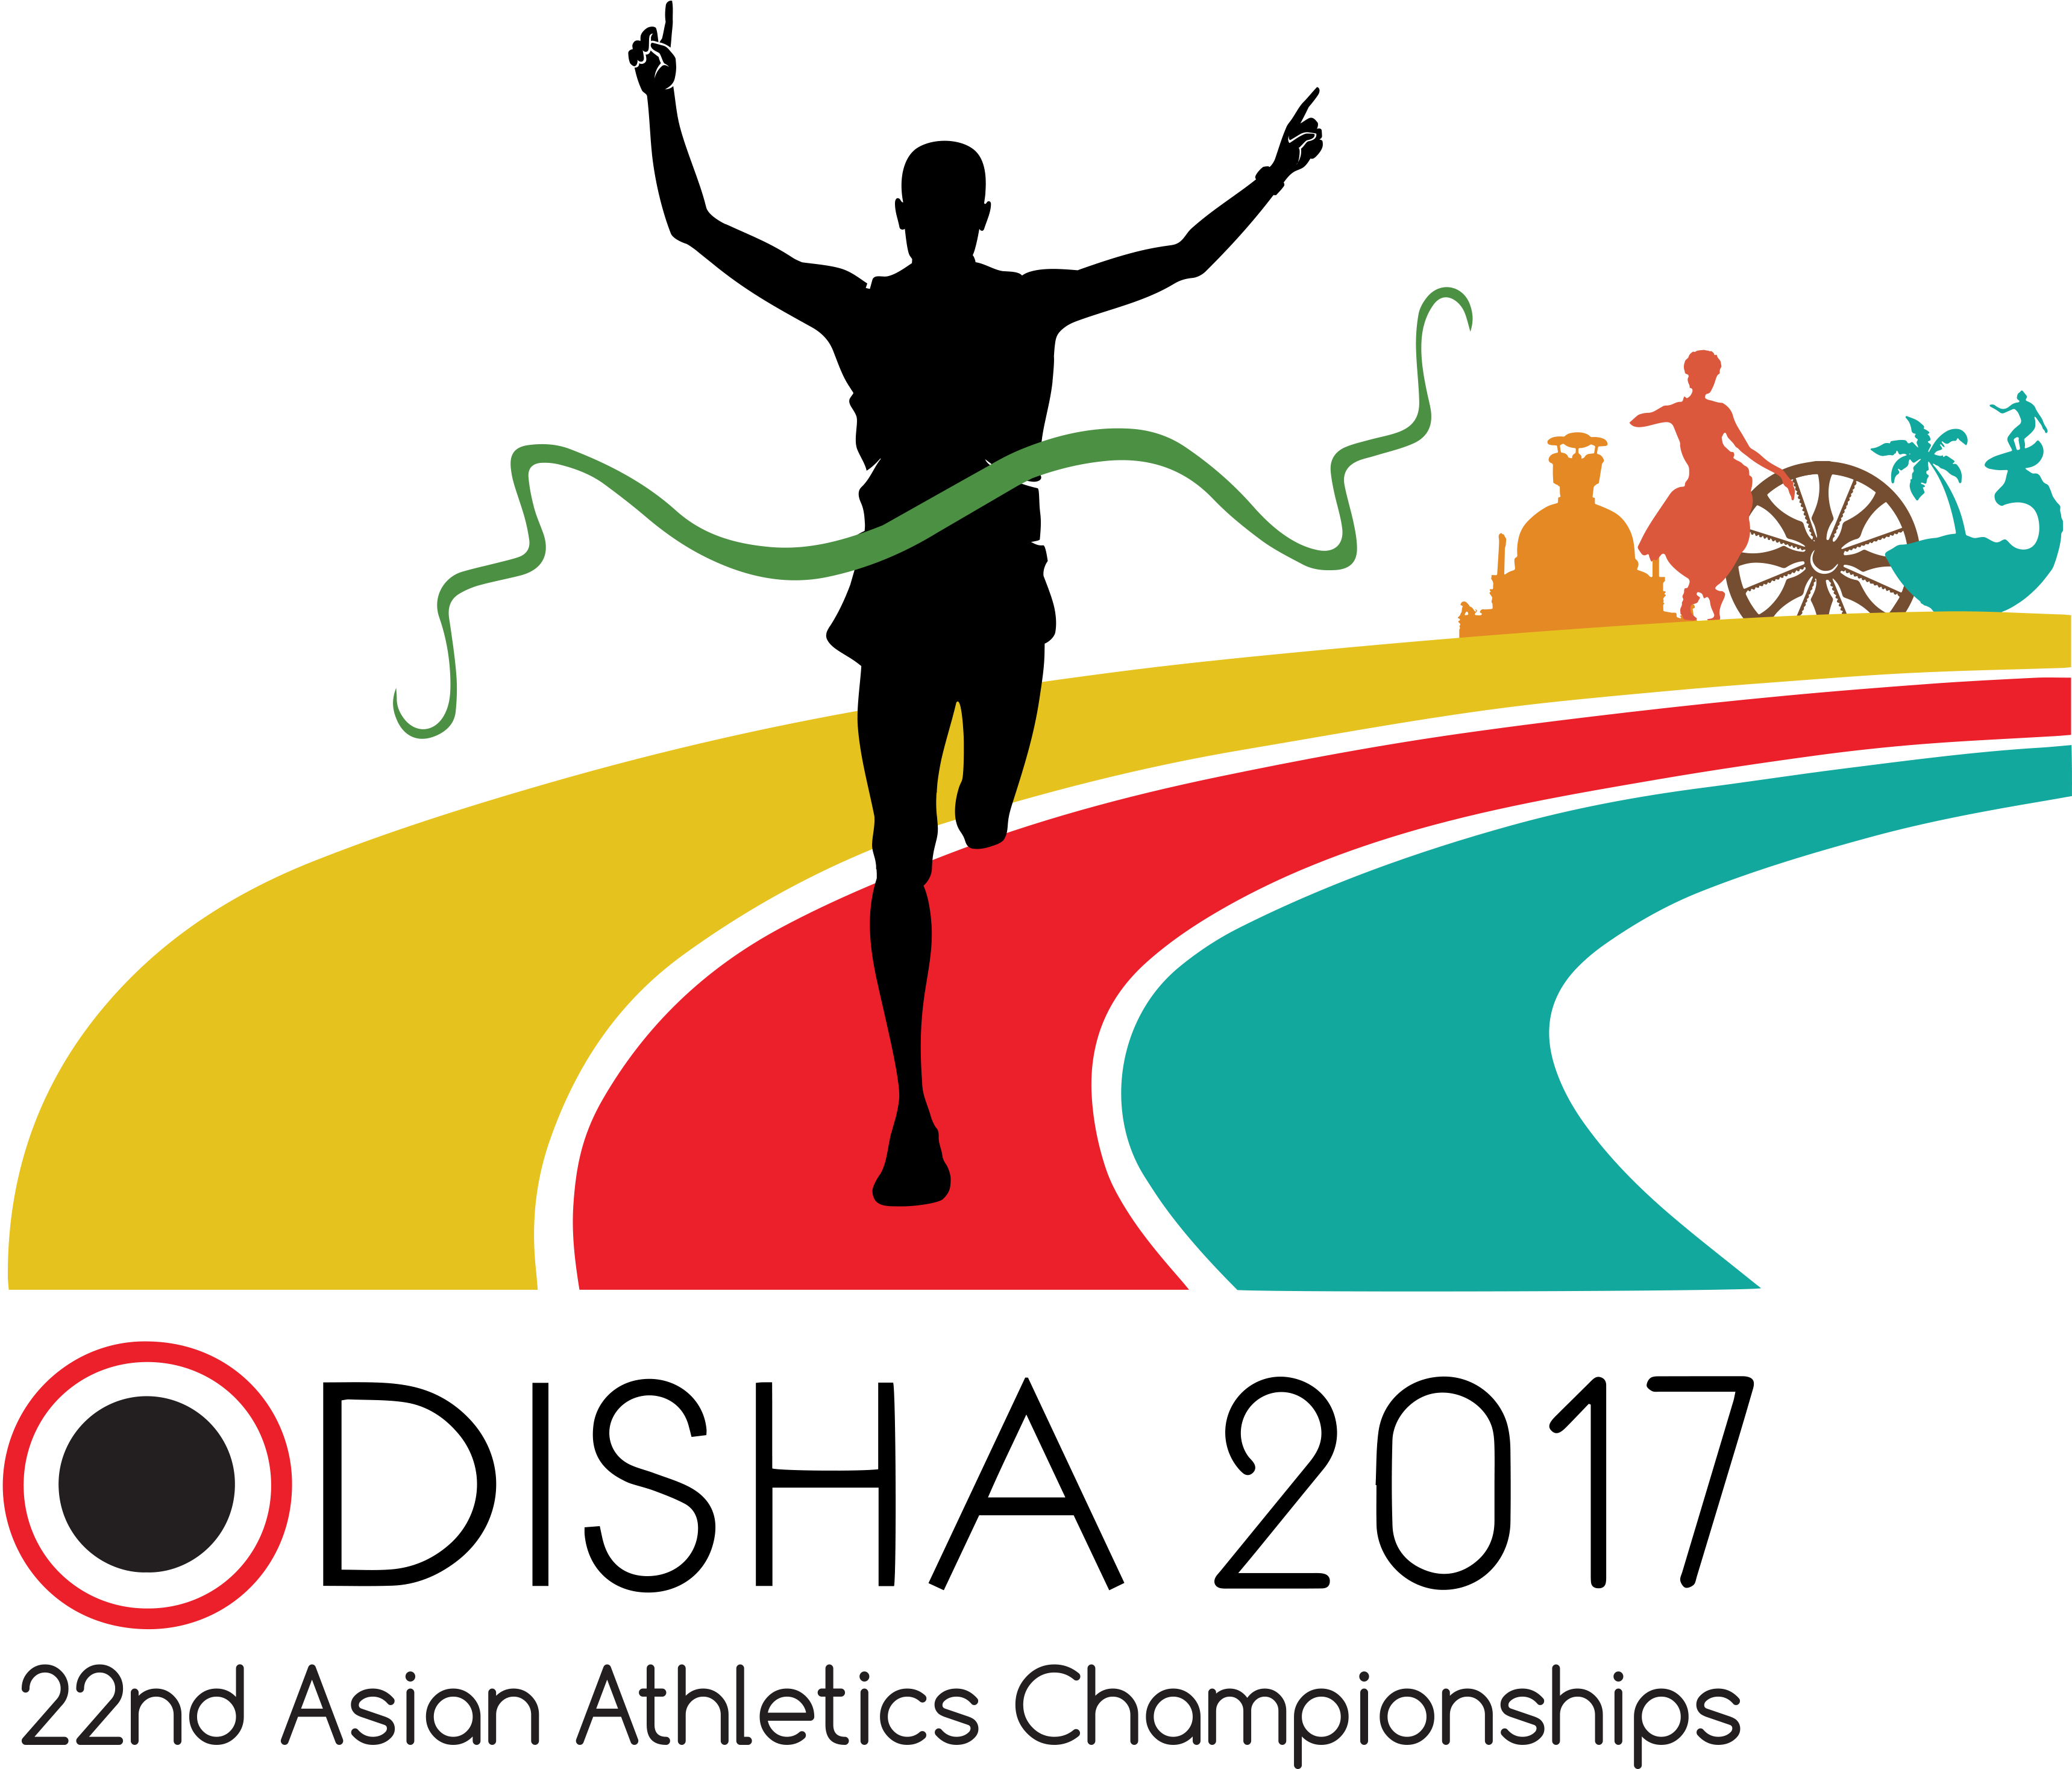 Aac official info. Games clipart athletic game